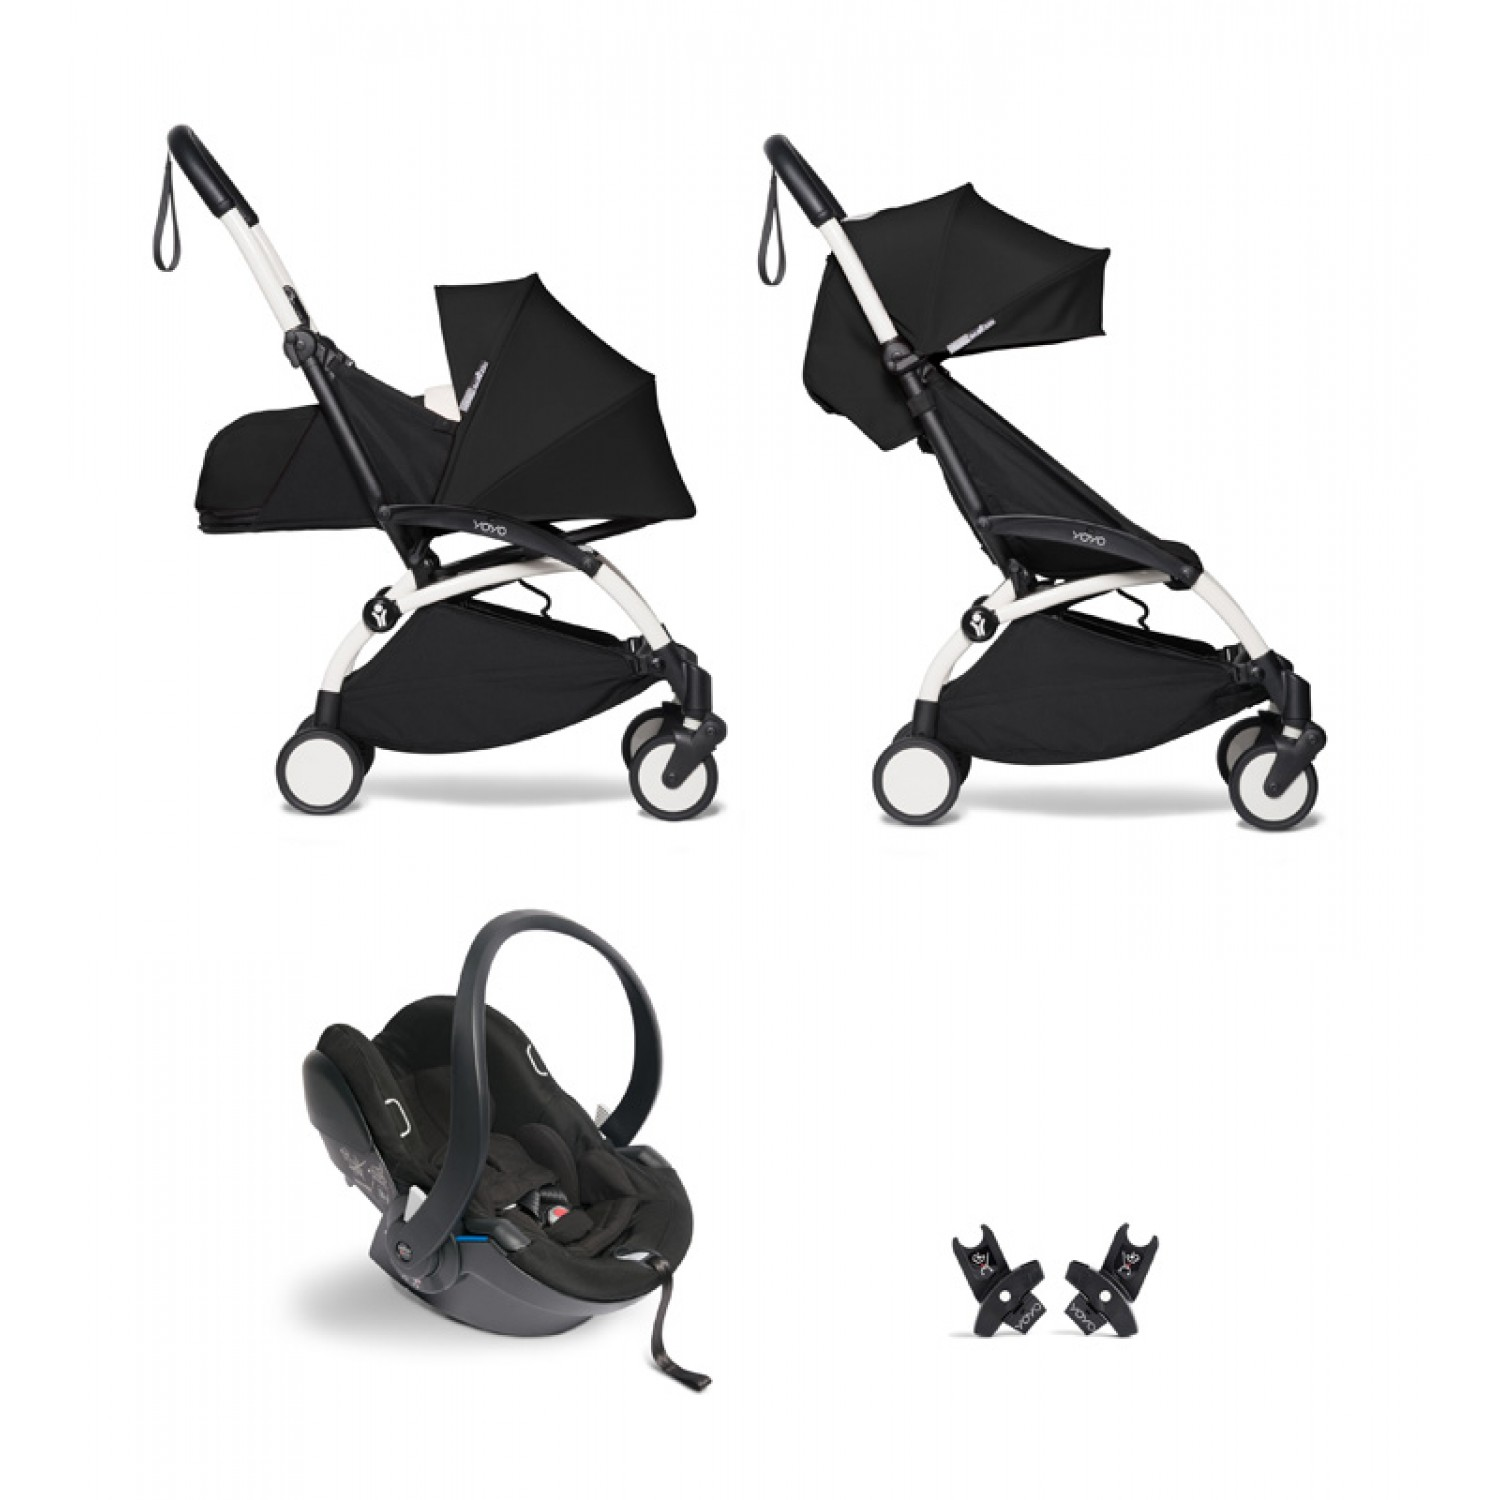 All-in-one BABYZEN stroller YOYO2 0+, car seat and 6+   | White Chassis Black